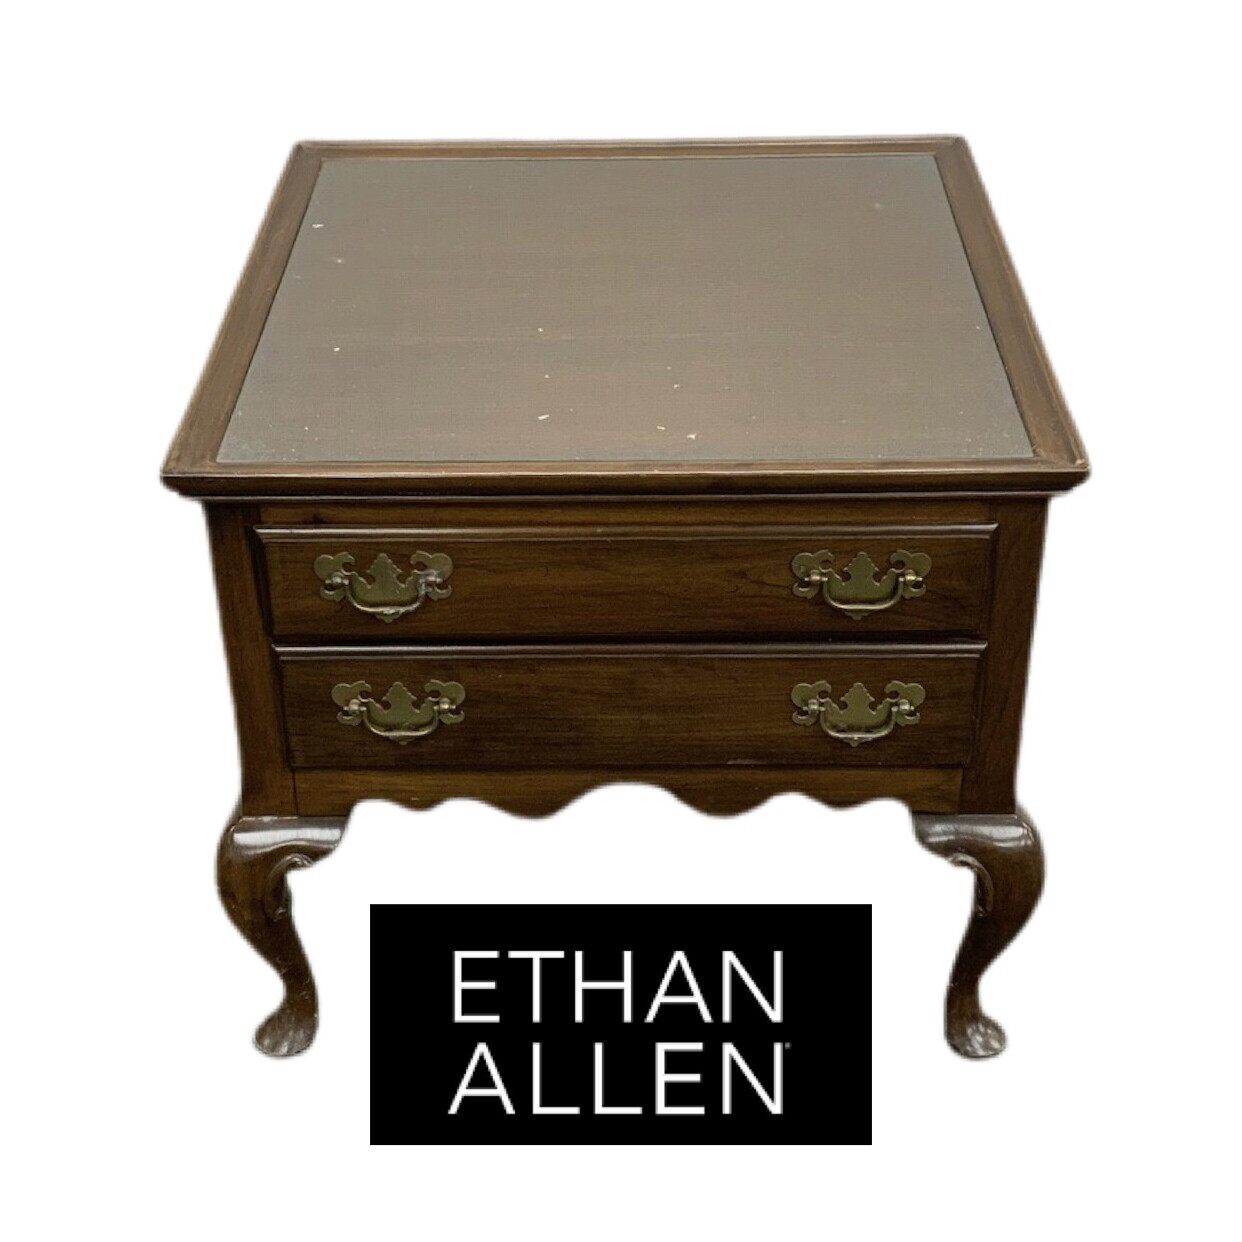 Ethan Allen 2 Drawer Side Table